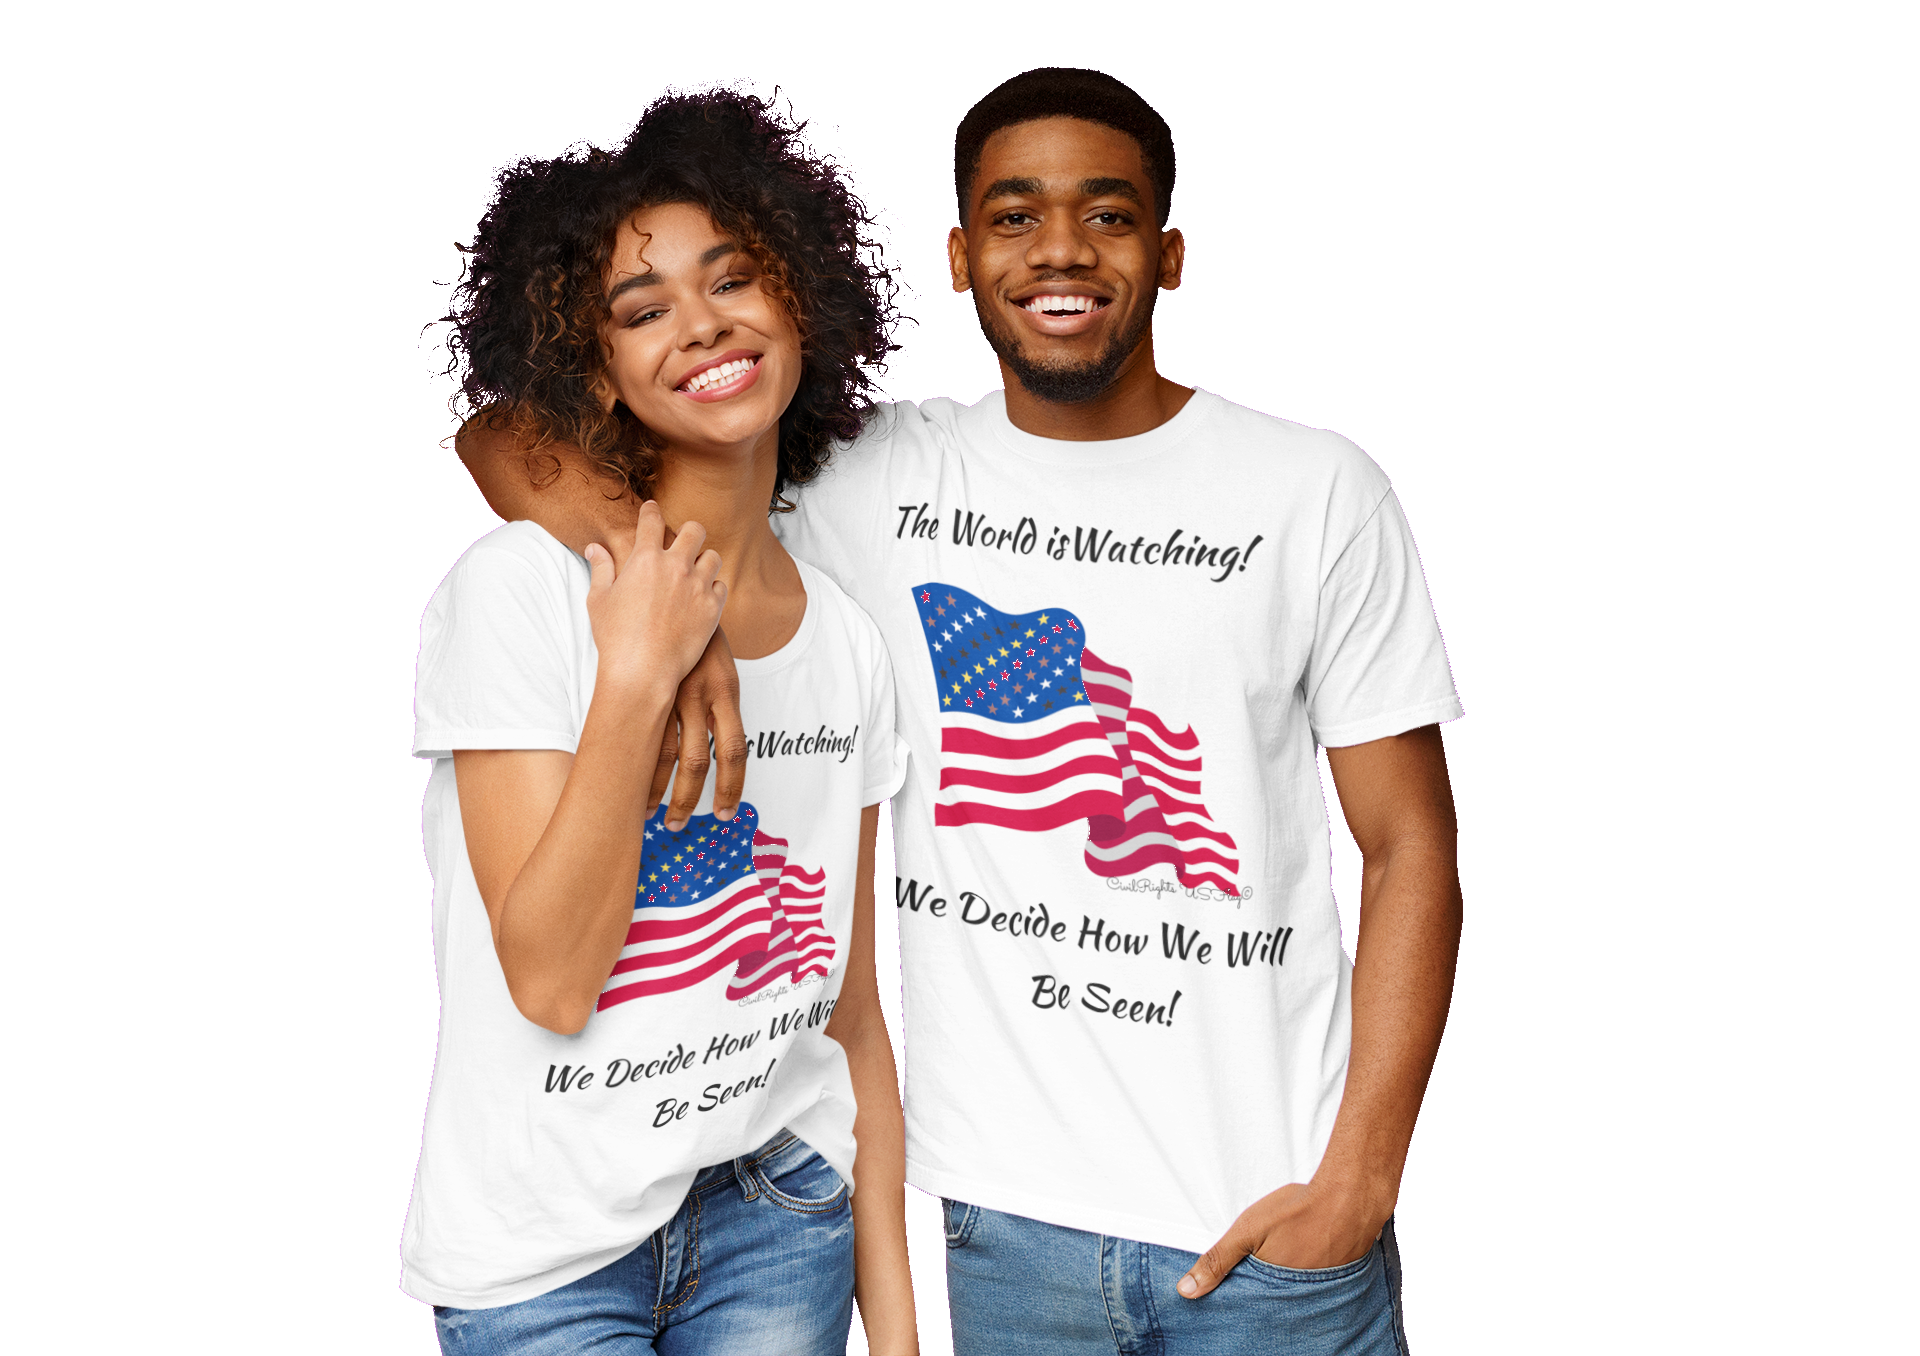 Civil Rights US Flag the World is Watching Eco friendly T-shirt